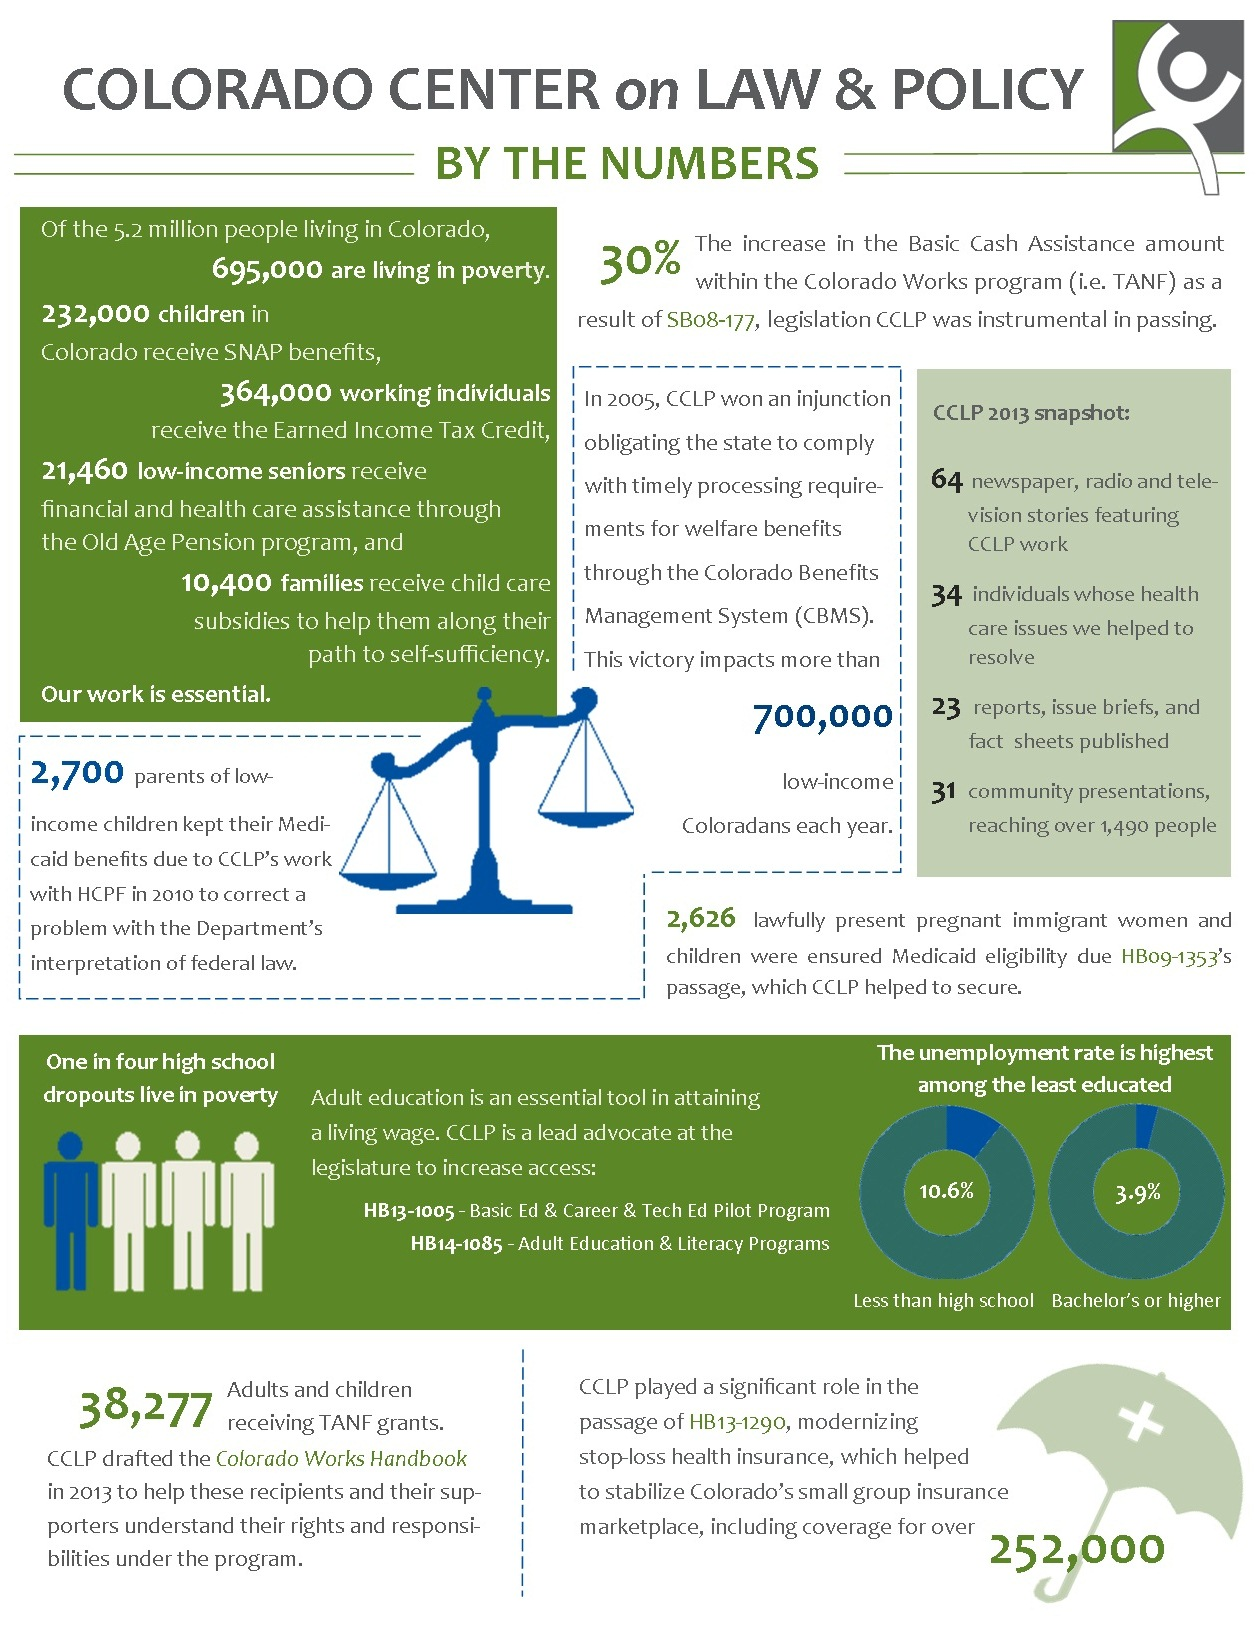 CCLP By the Numbers 2014